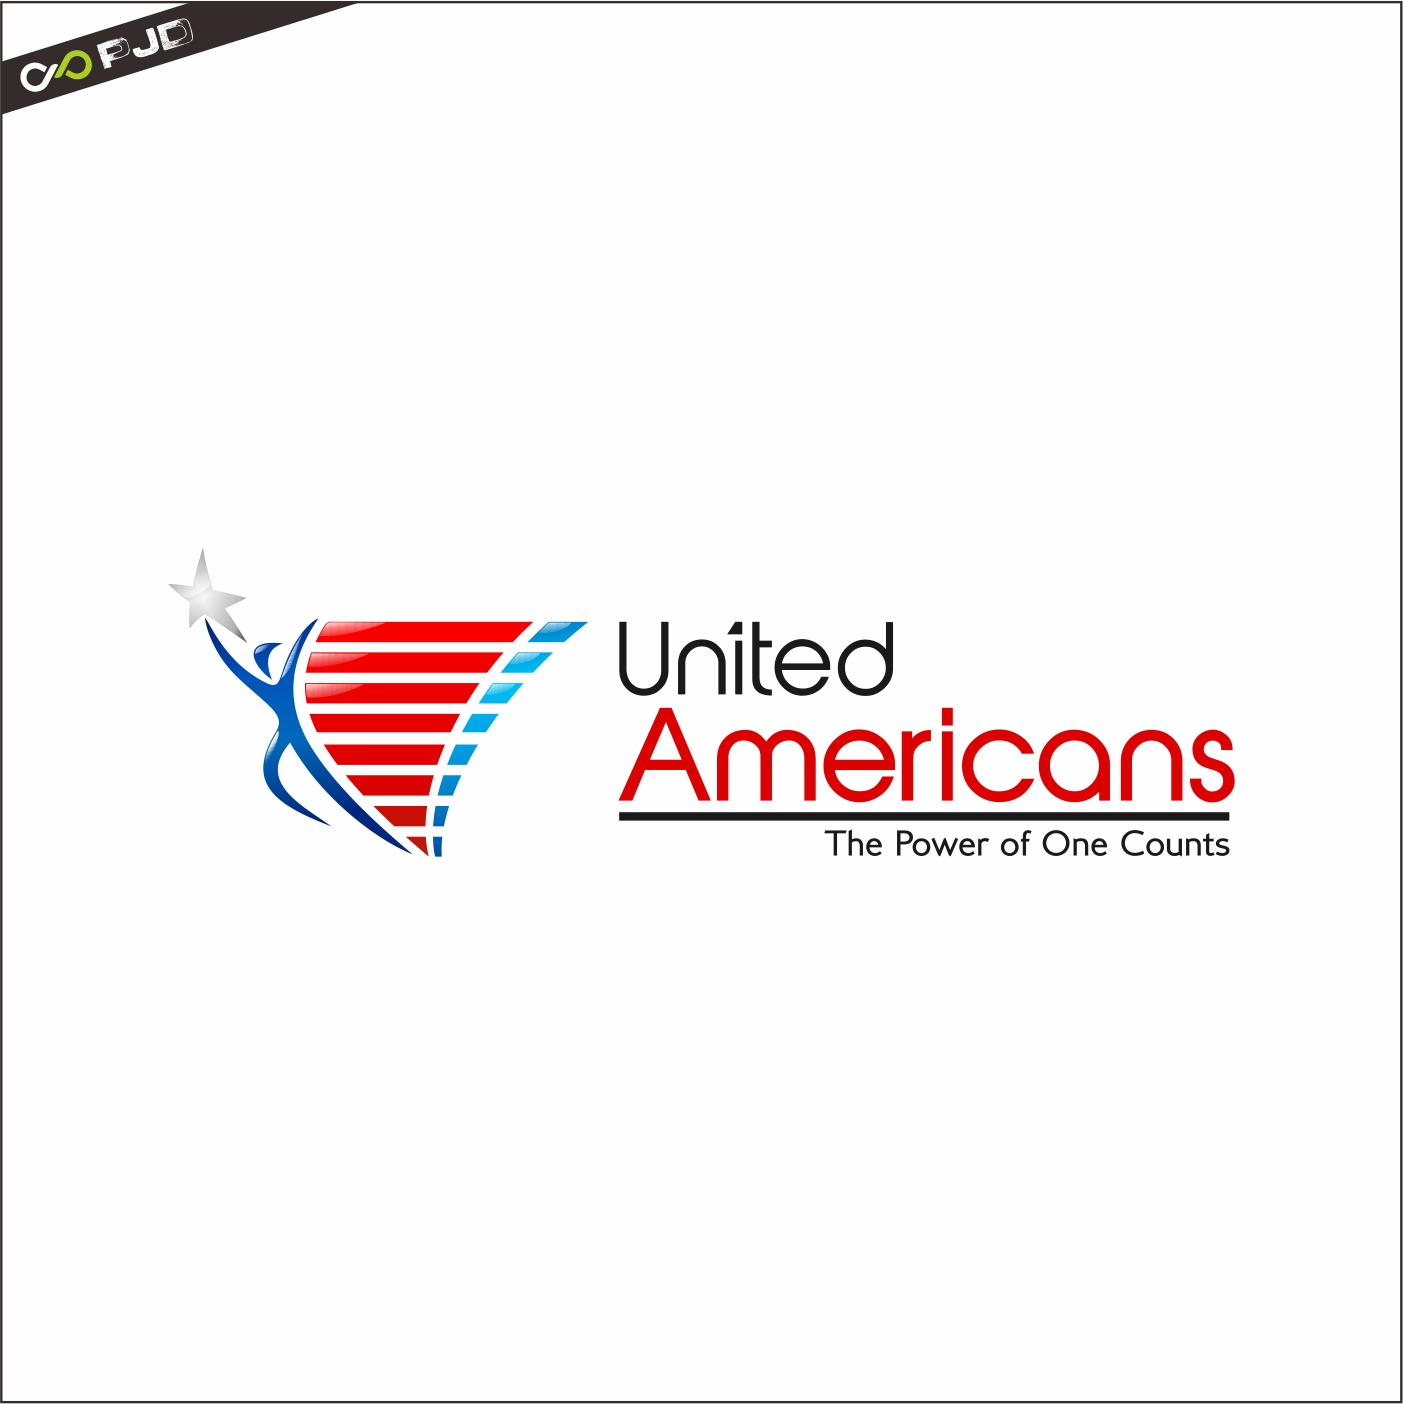 Logo Design by PJD - Entry No. 127 in the Logo Design Contest Creative Logo Design for United Americans.